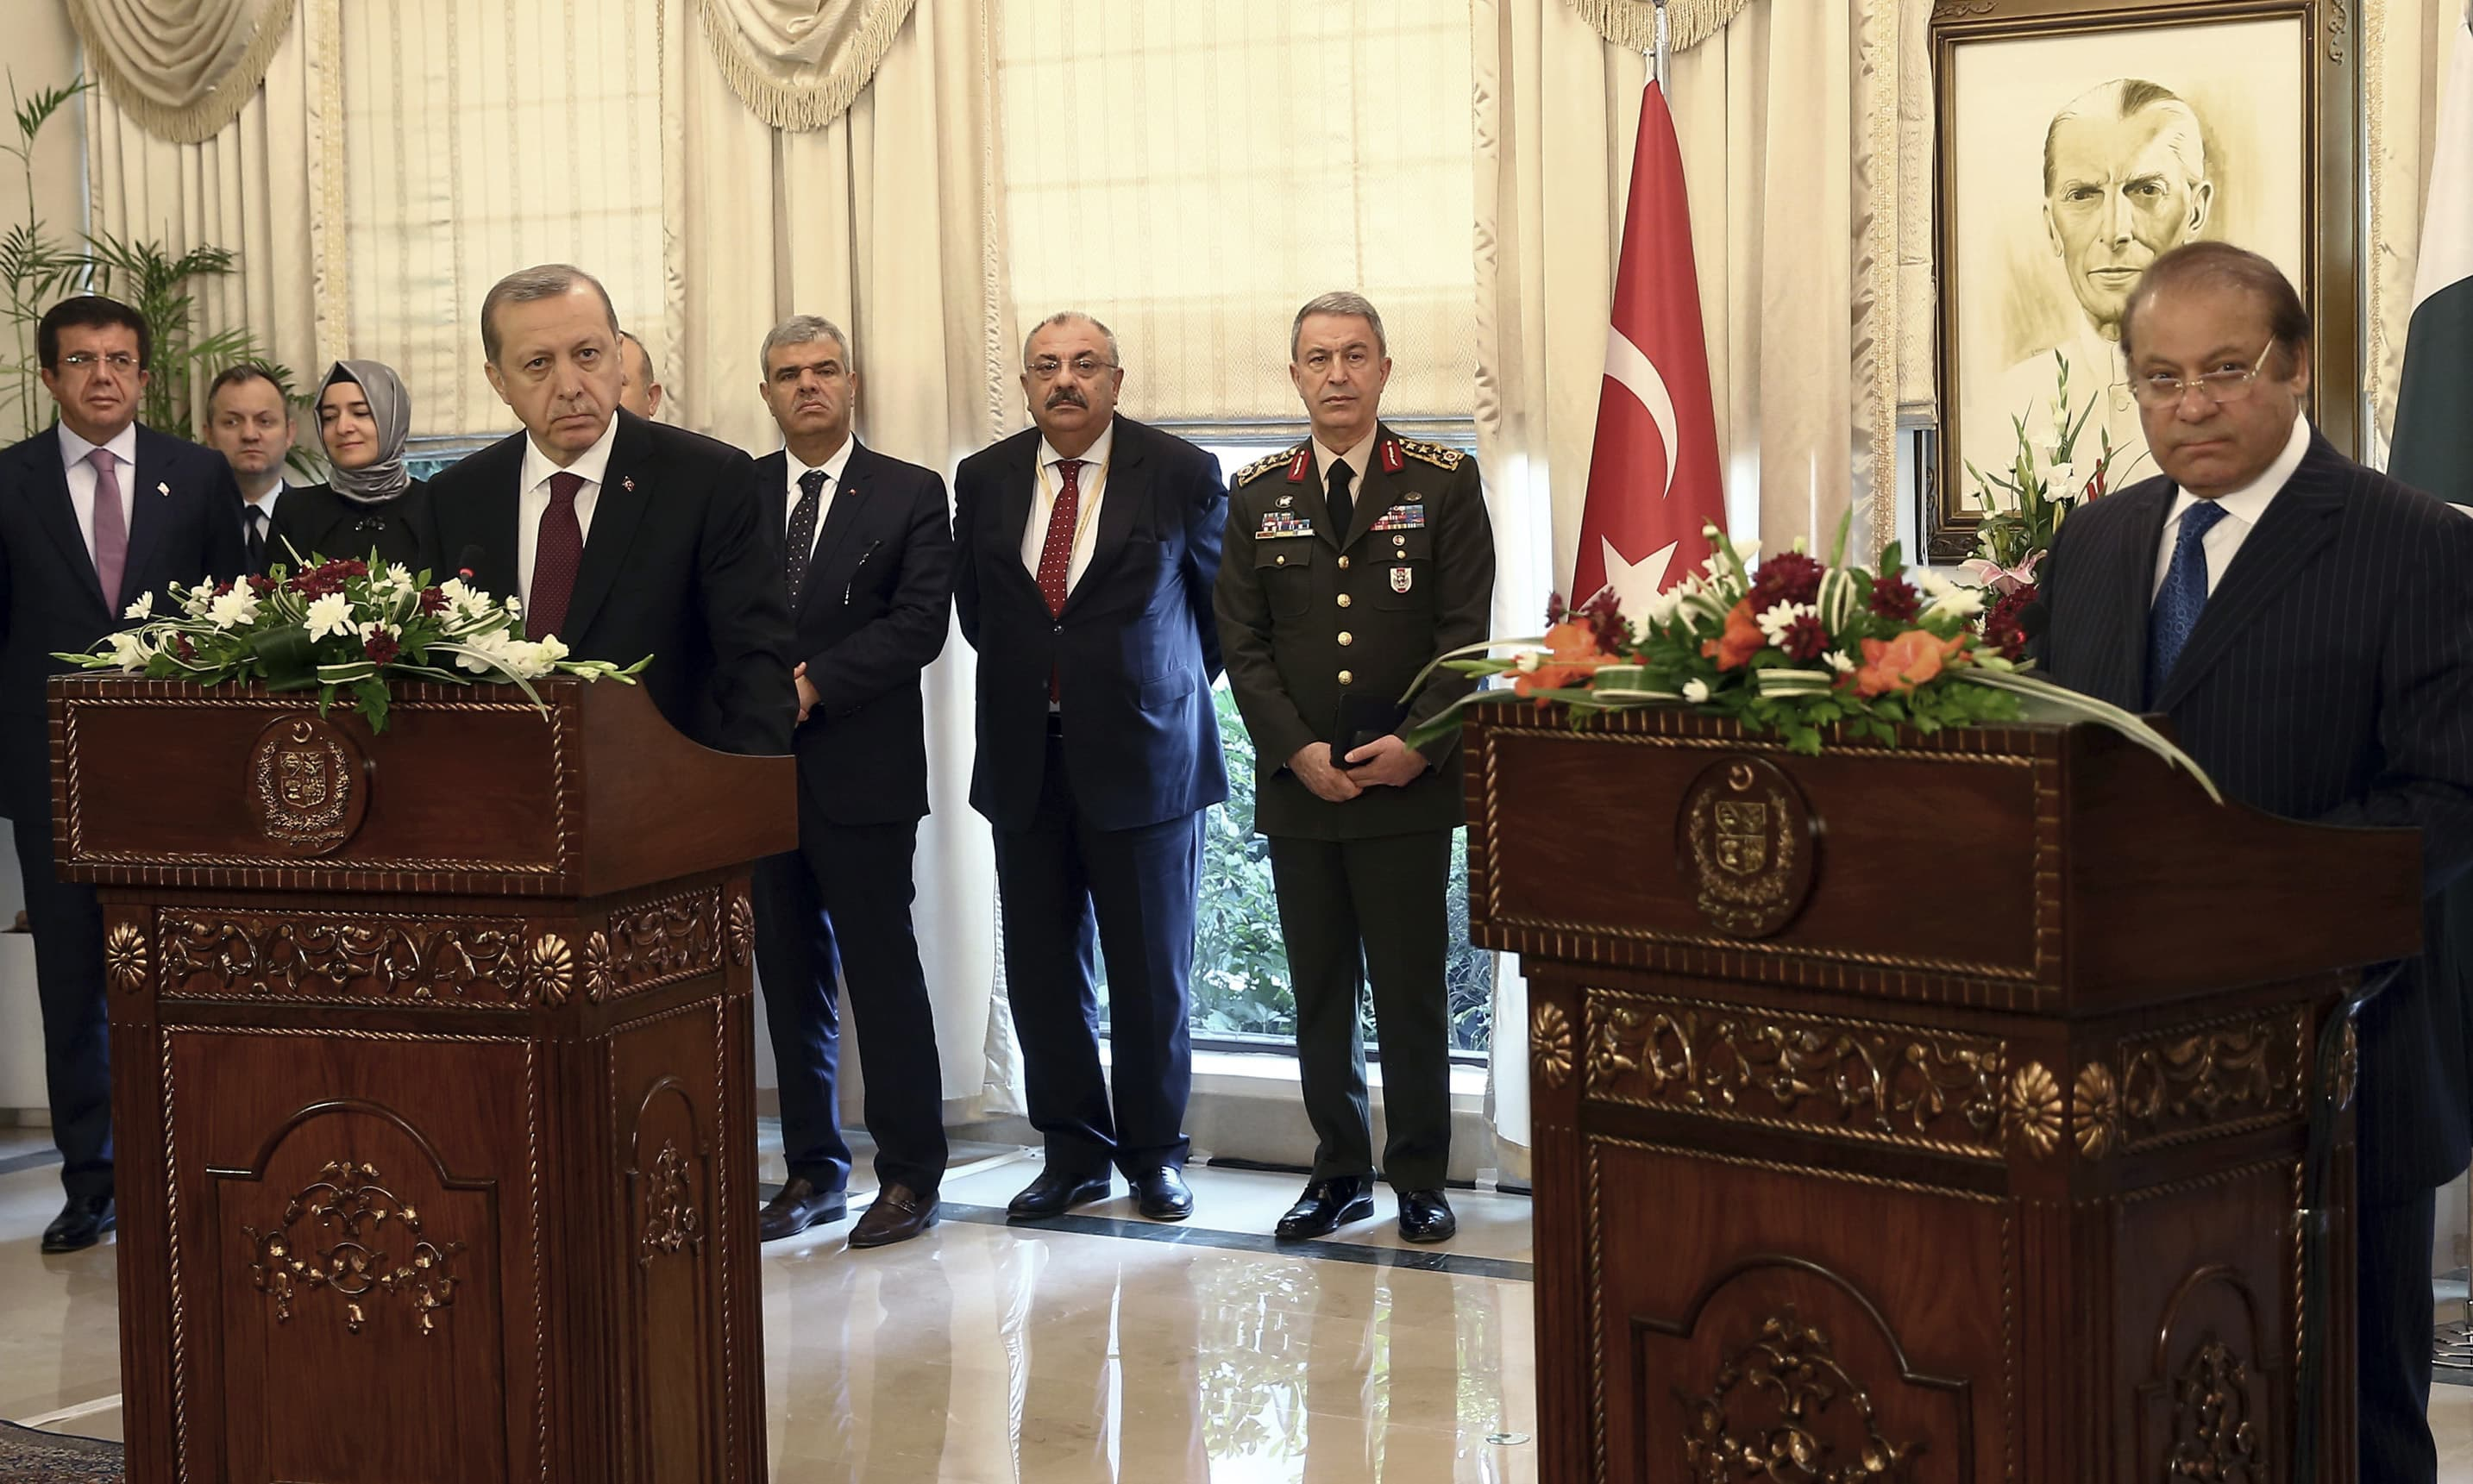 PM Nawaz Sharif, Turkish President Erdogan address joint press conference. ─AP